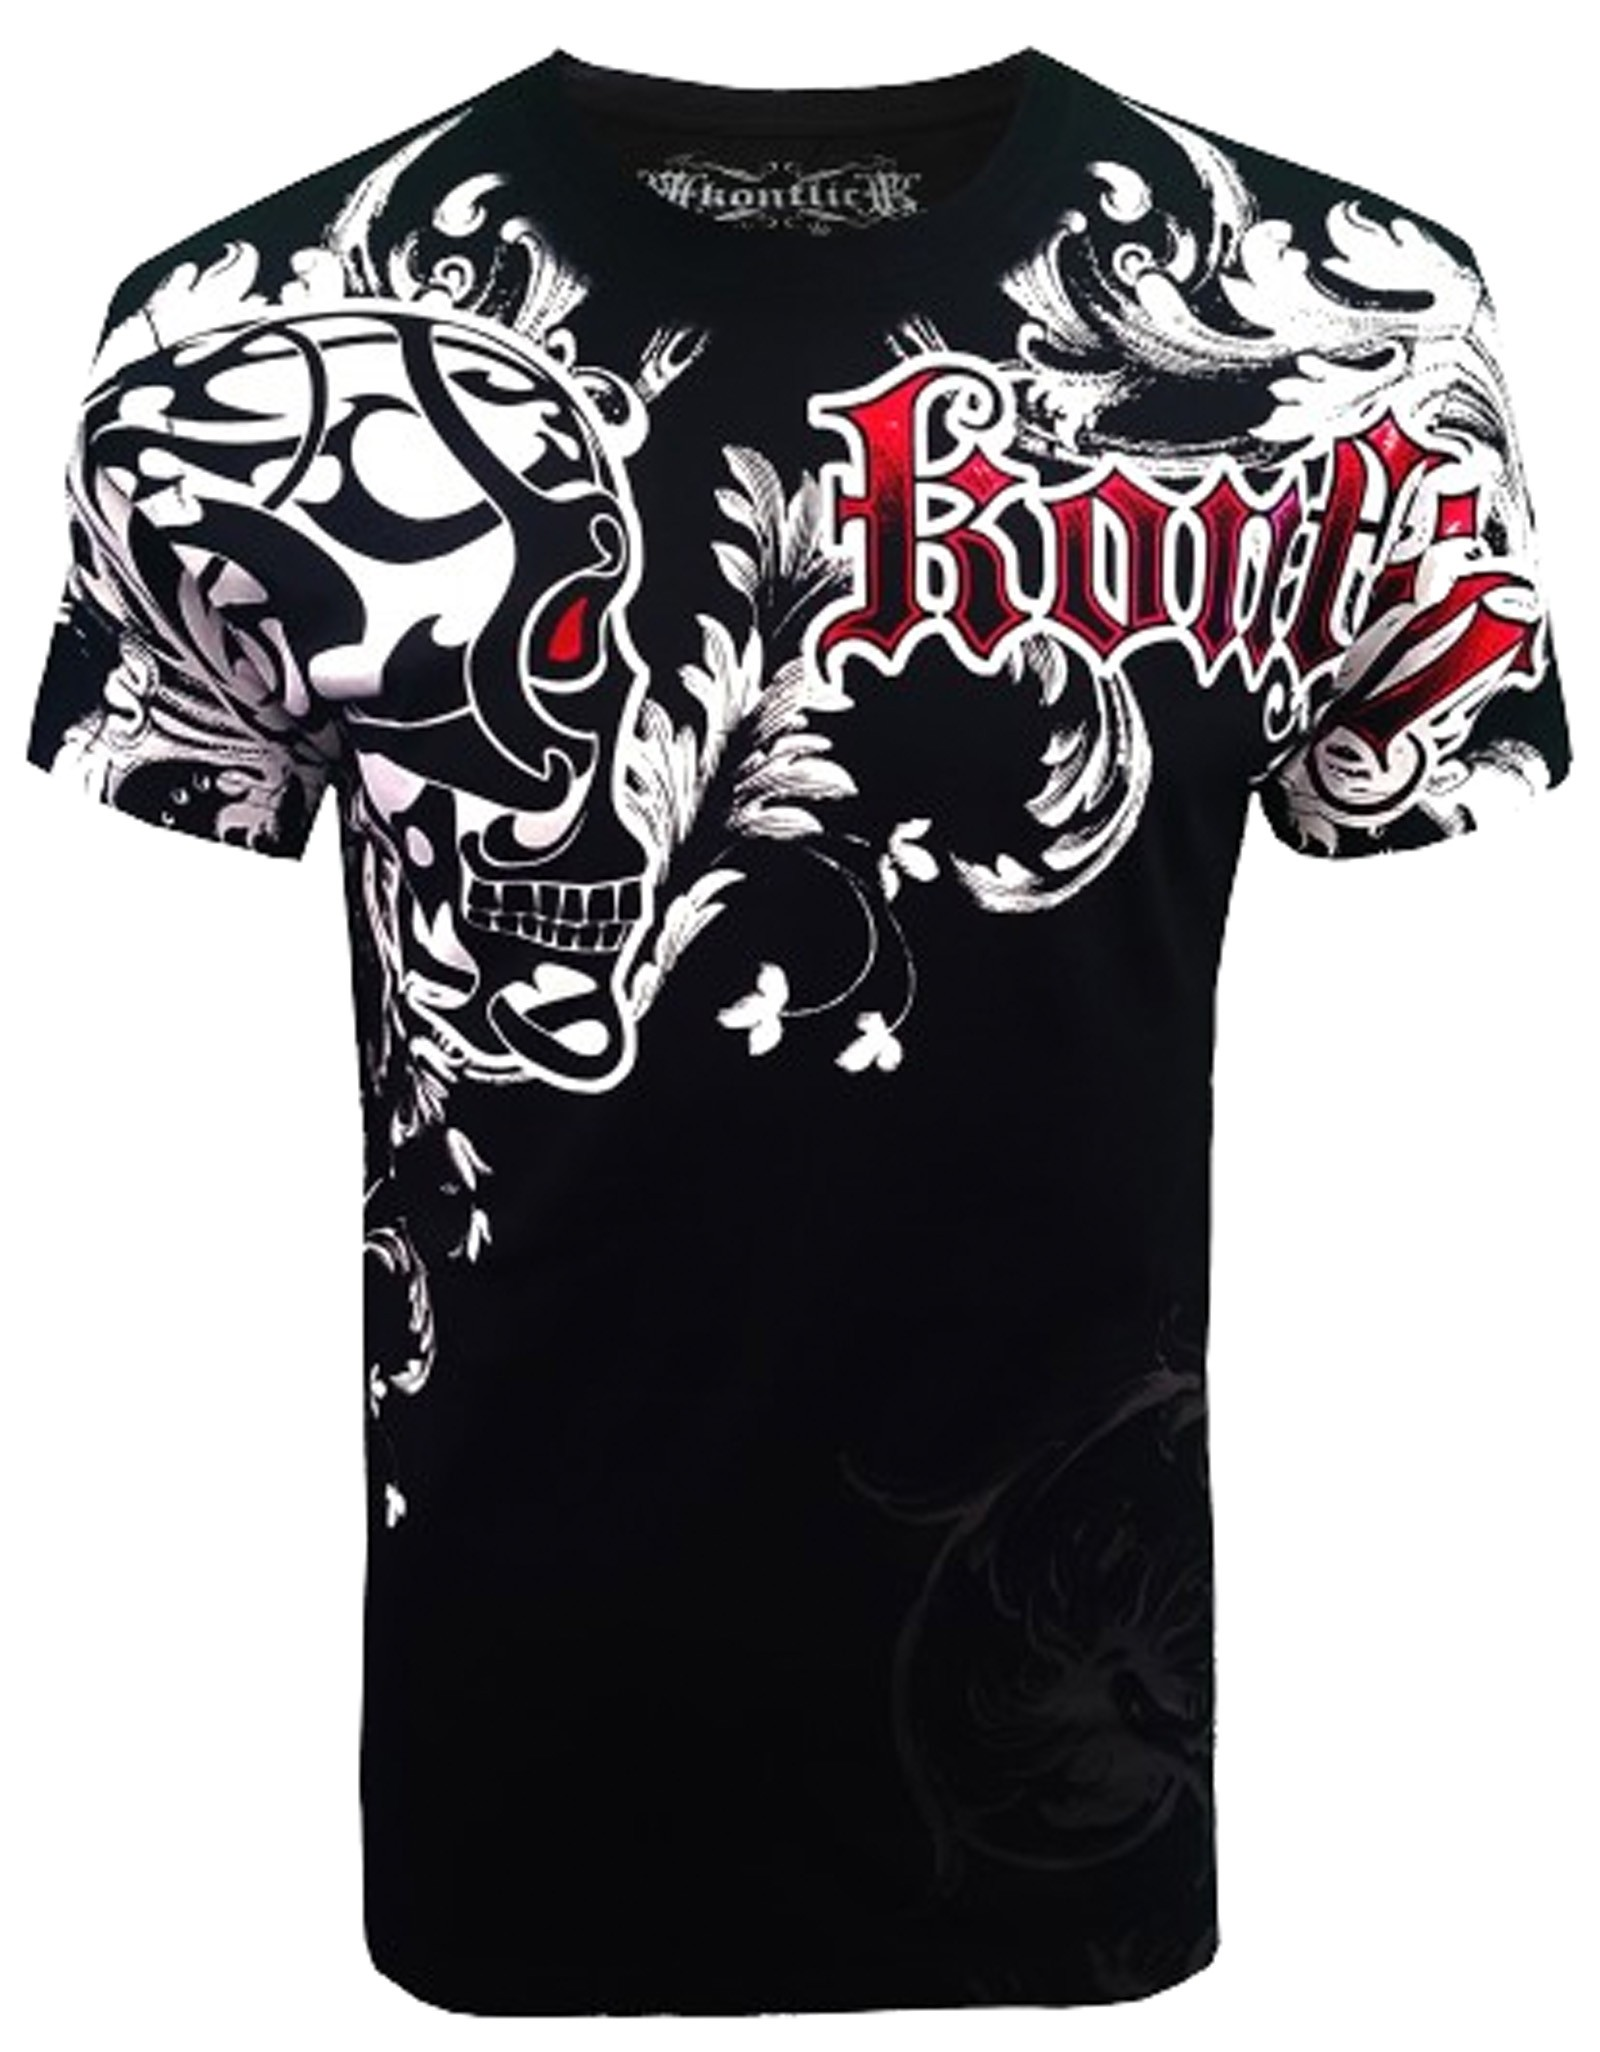 Konflic Clothing - Skull Shied T-Shirt